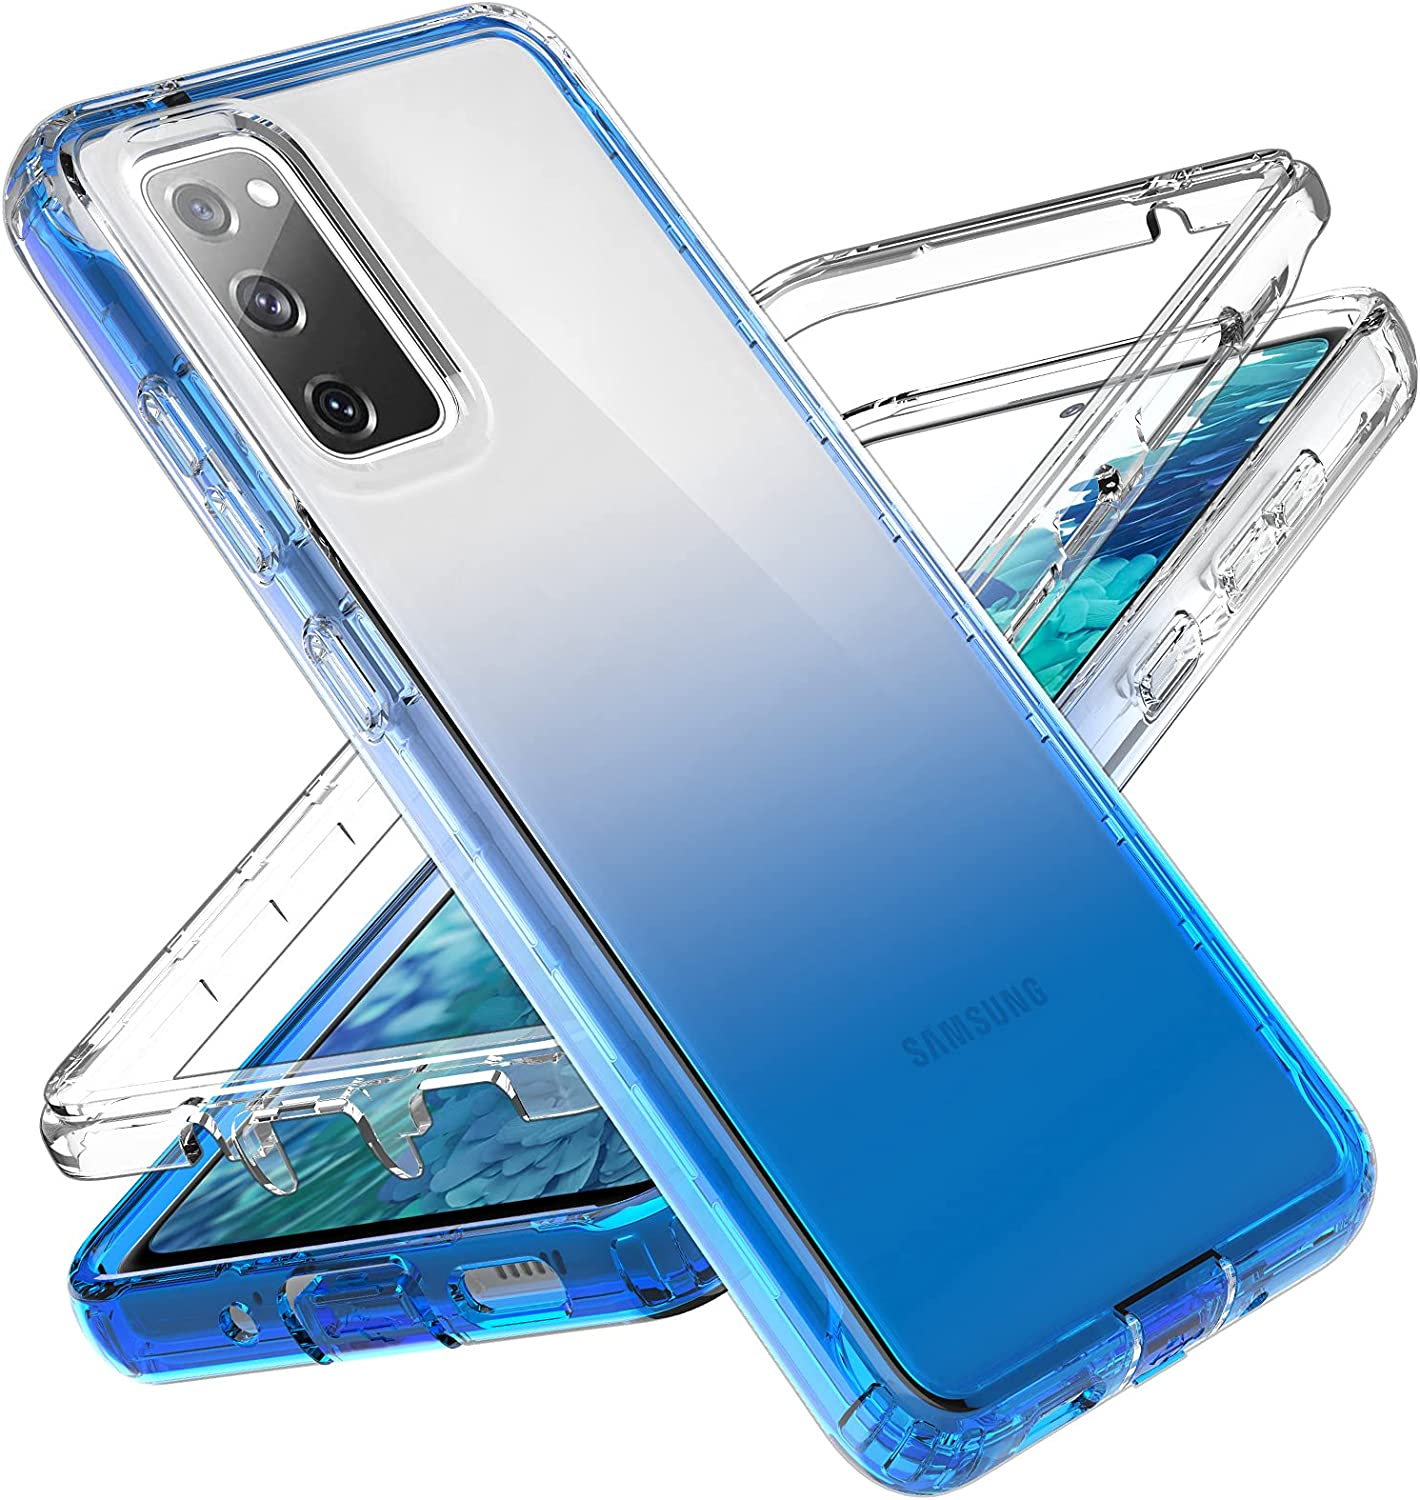 LakiBeibi Designed for Samsung S20 FE Case, 2 in 1 Design Clear Full Body Shockproof Protective Case for Girls Women with TPU Bumper, Slim Fit Phone Case for Samsung Galaxy S20 FE 5G, Clear Blue